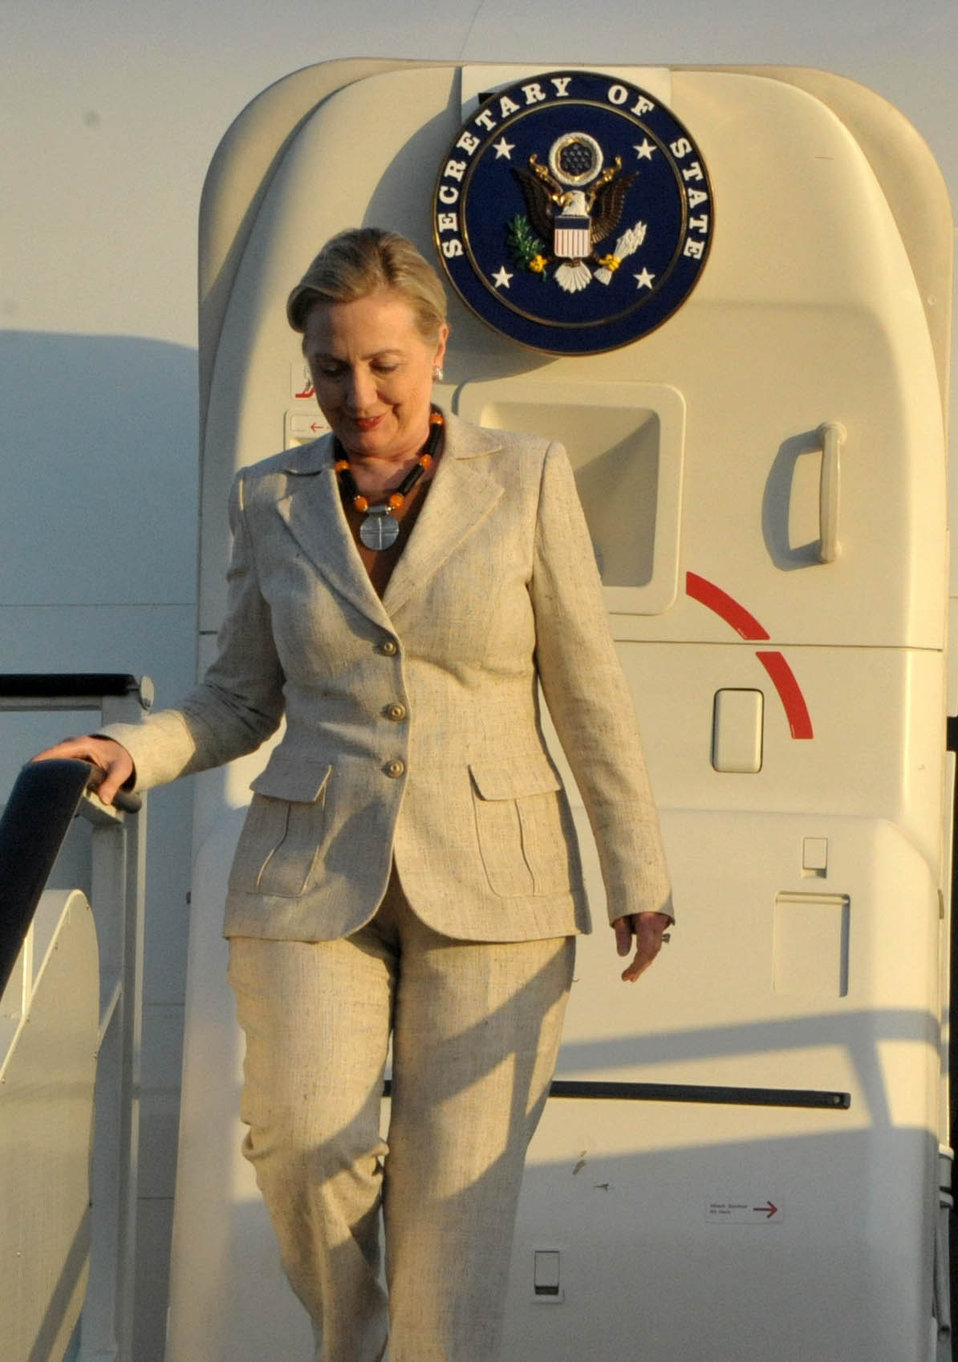 Secretary Clinton Steps Off the Plane